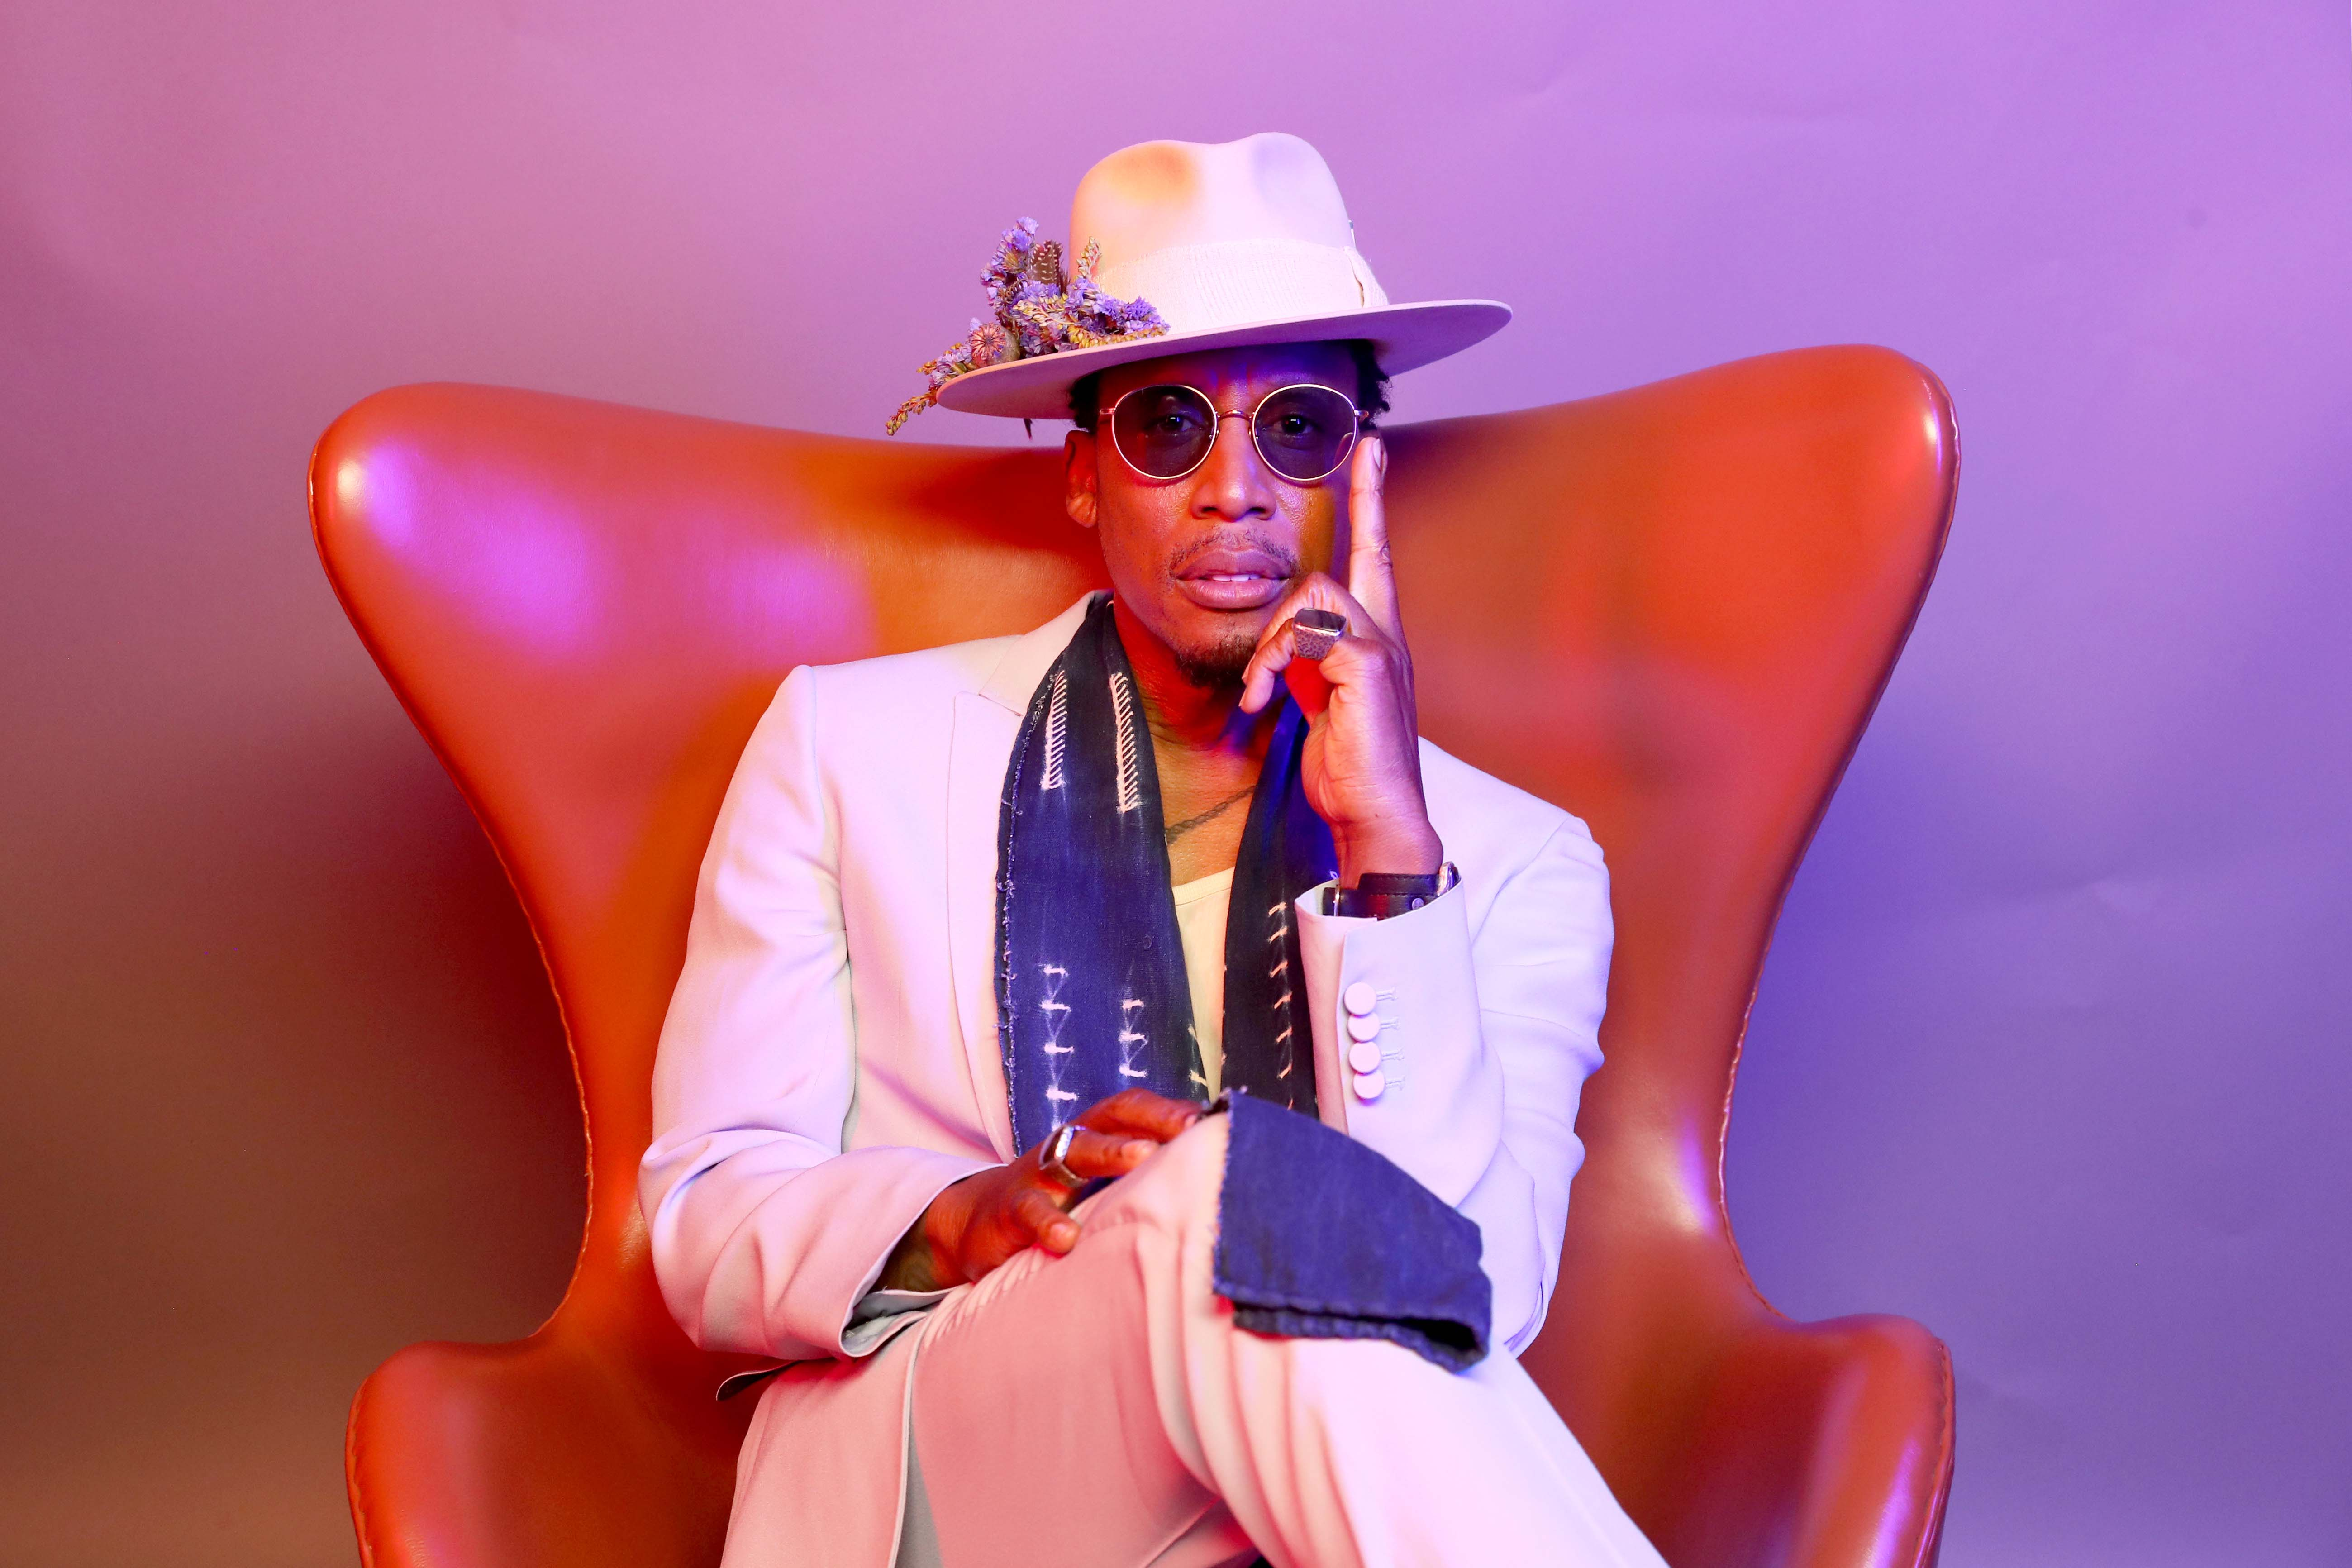 23 June 2019: Raphael Saadiq at the BET Awards at the Microsoft Theater in Los Angeles, California, in the United States. (Photograph by Bennett Raglin/Getty Images for BET)